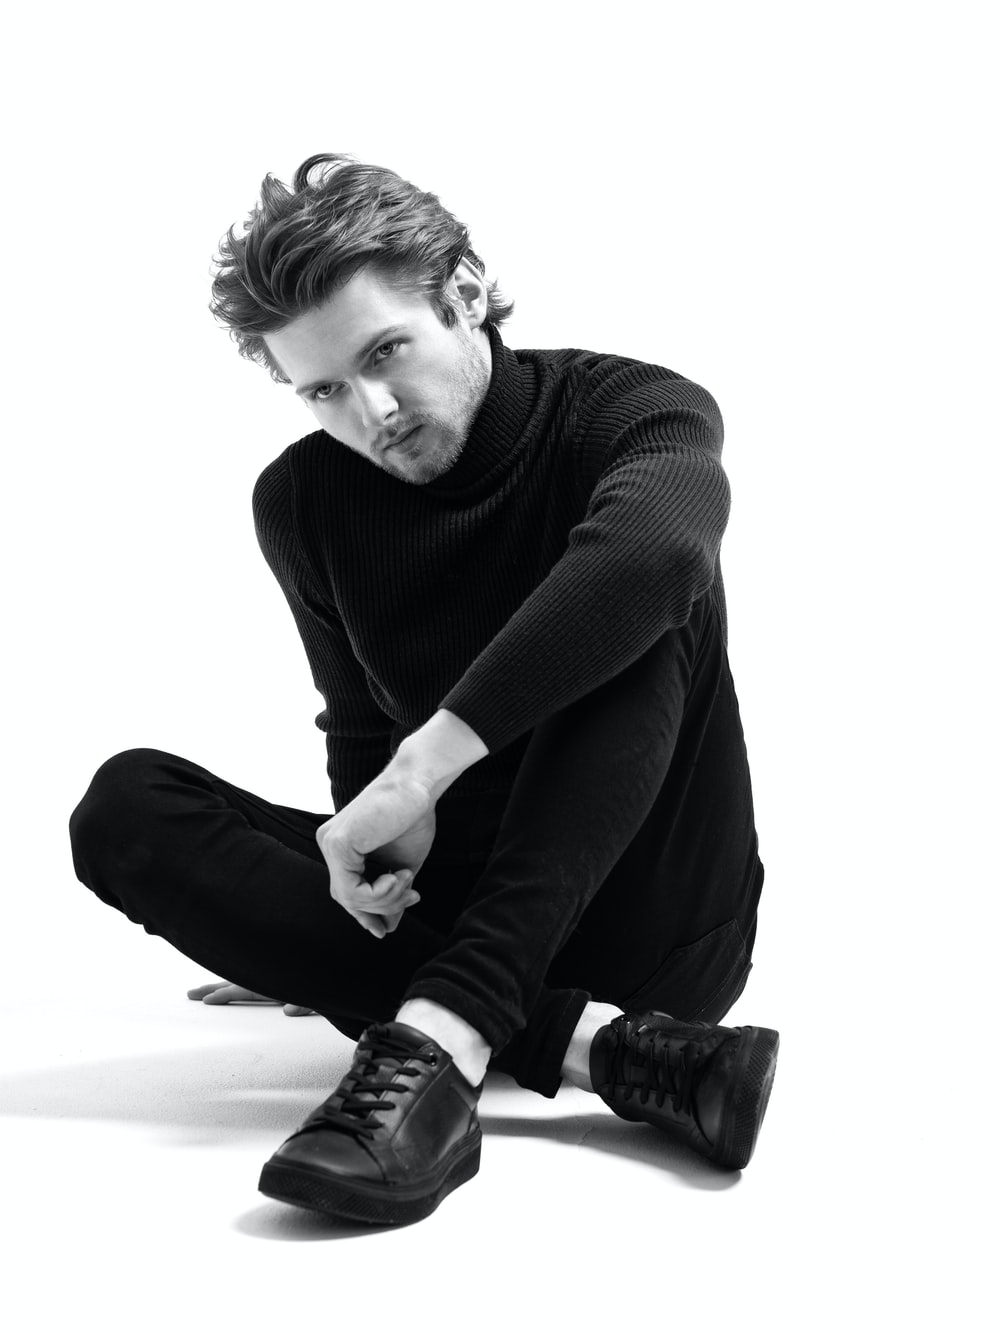 man in black sweater and black pants sitting on floor